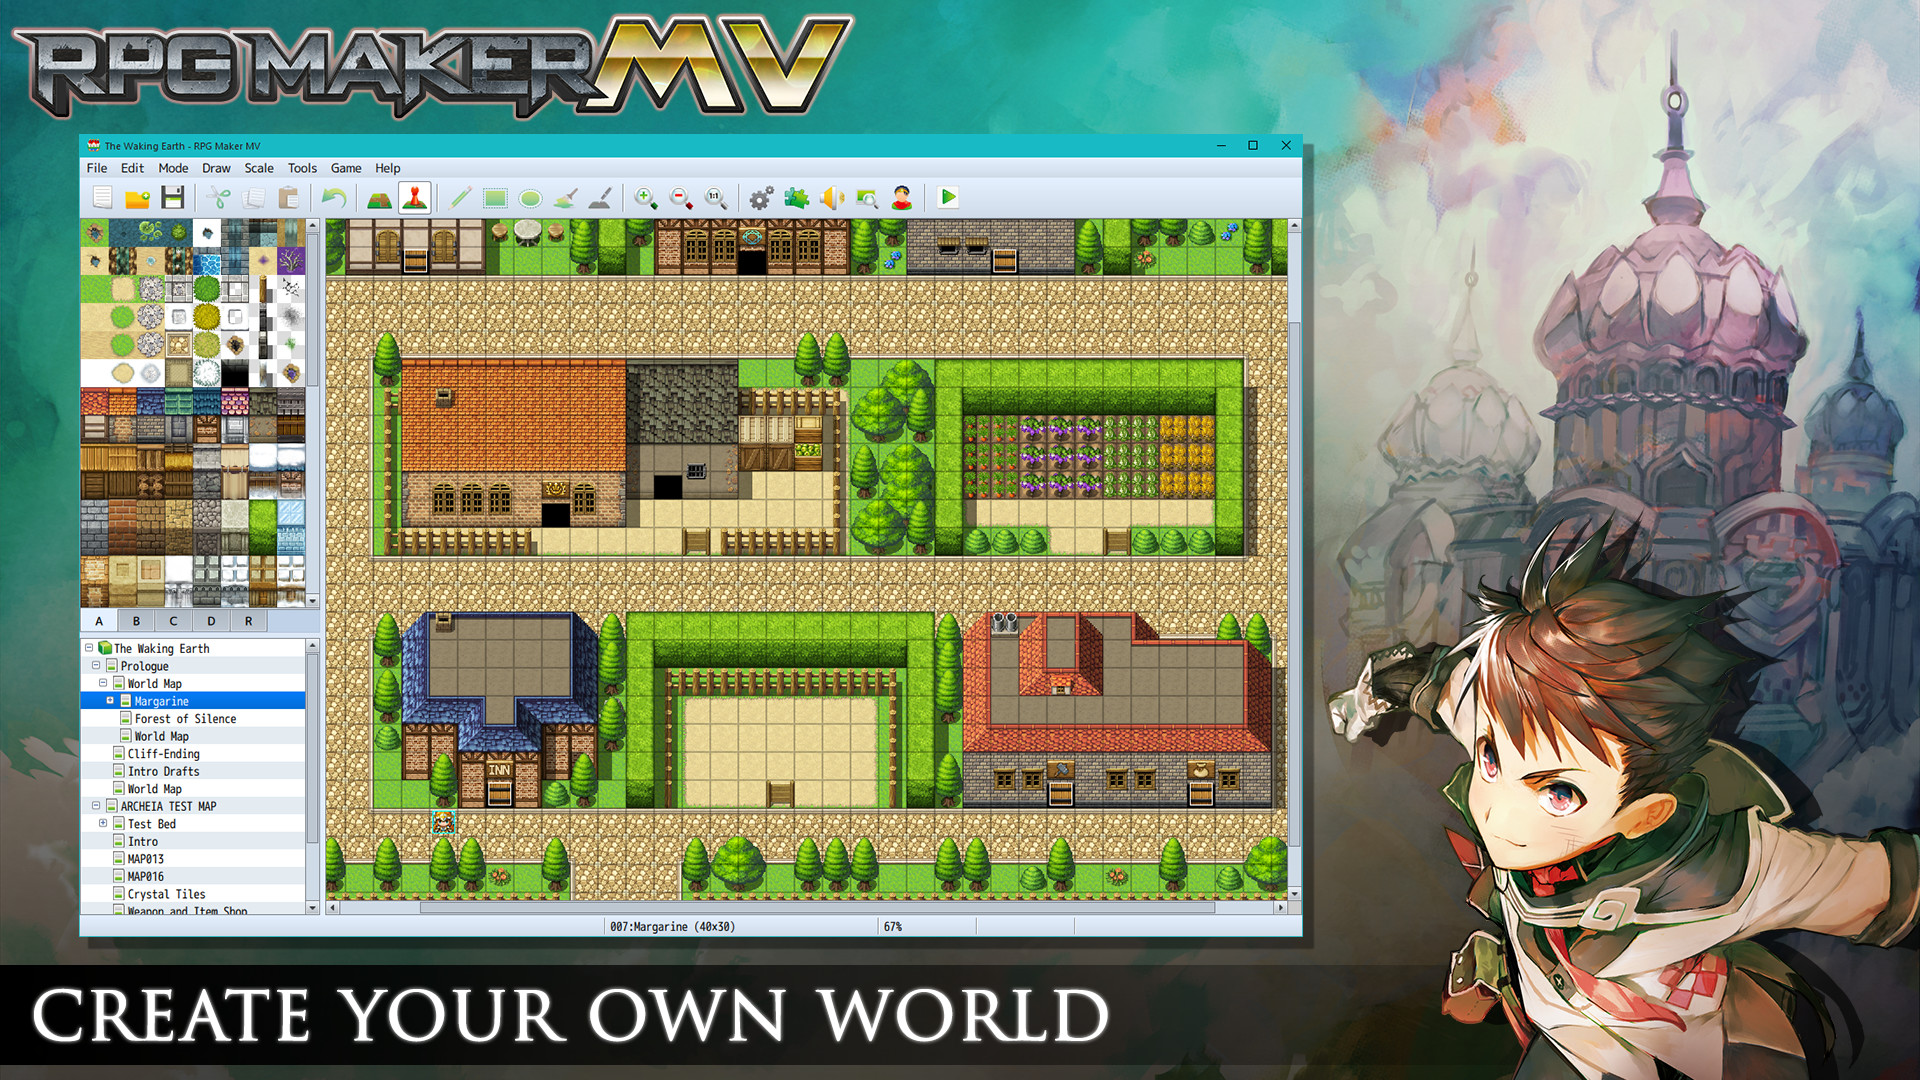 Create your own world image rpg maker mv indie db add media report rss create your own world view original gumiabroncs Images